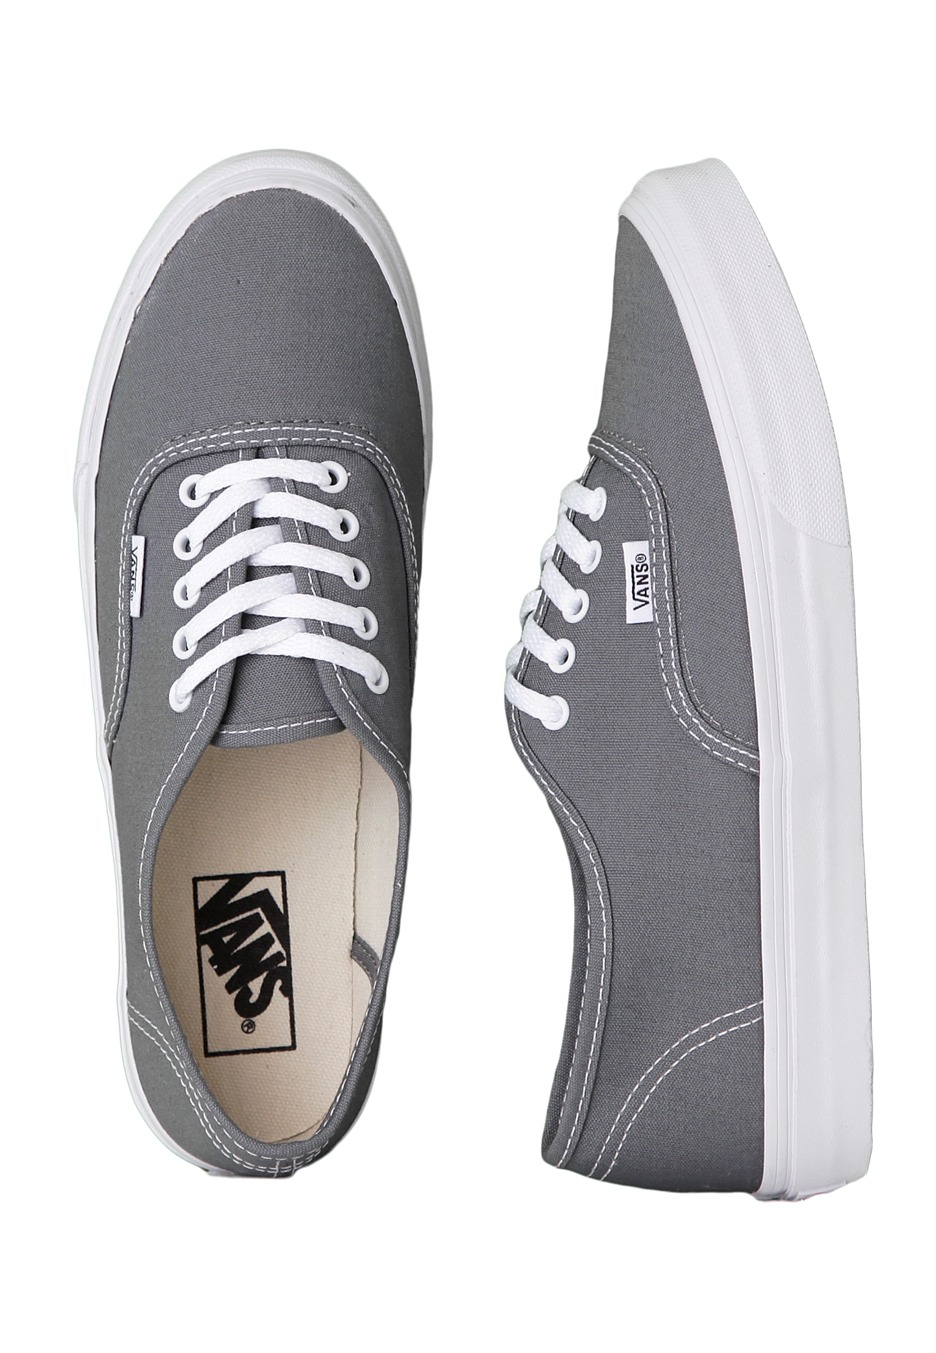 4c4d6f92501 Vans - Authentic Slim Monument True White - Girl Shoes - Impericon.com UK